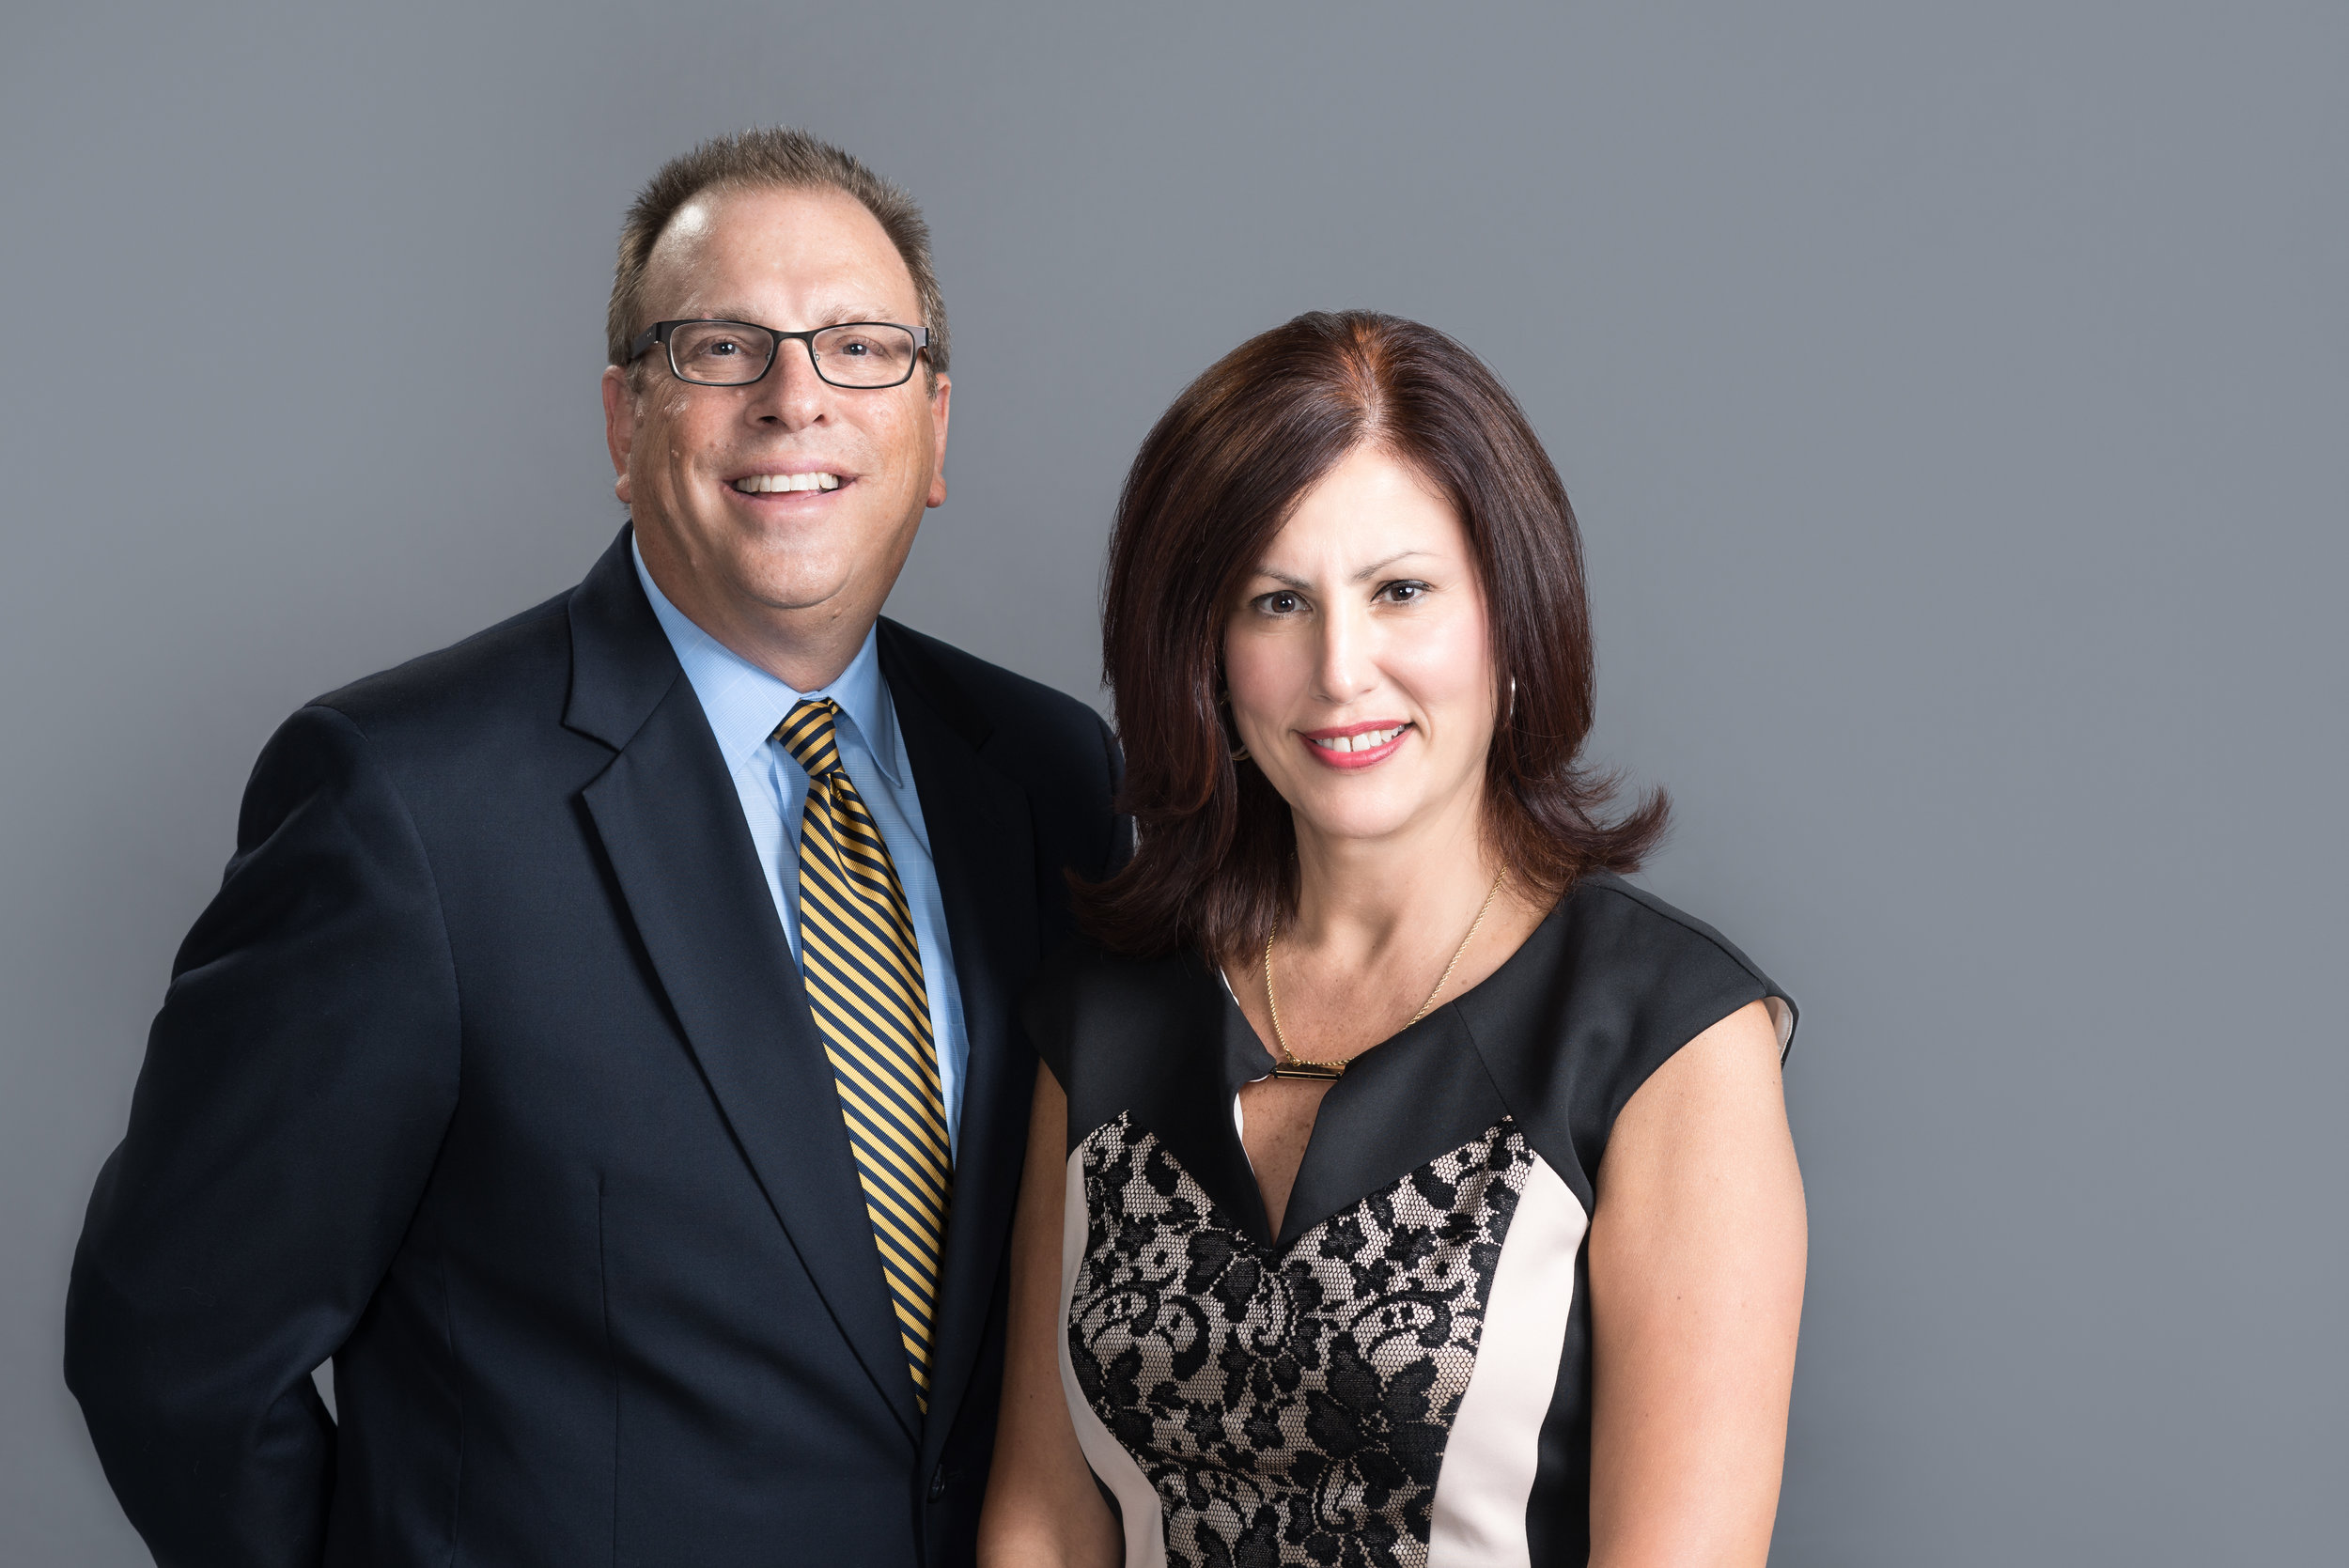 Jacksonville commercial photographers at Monarch Studio specialize in corporate headshots.